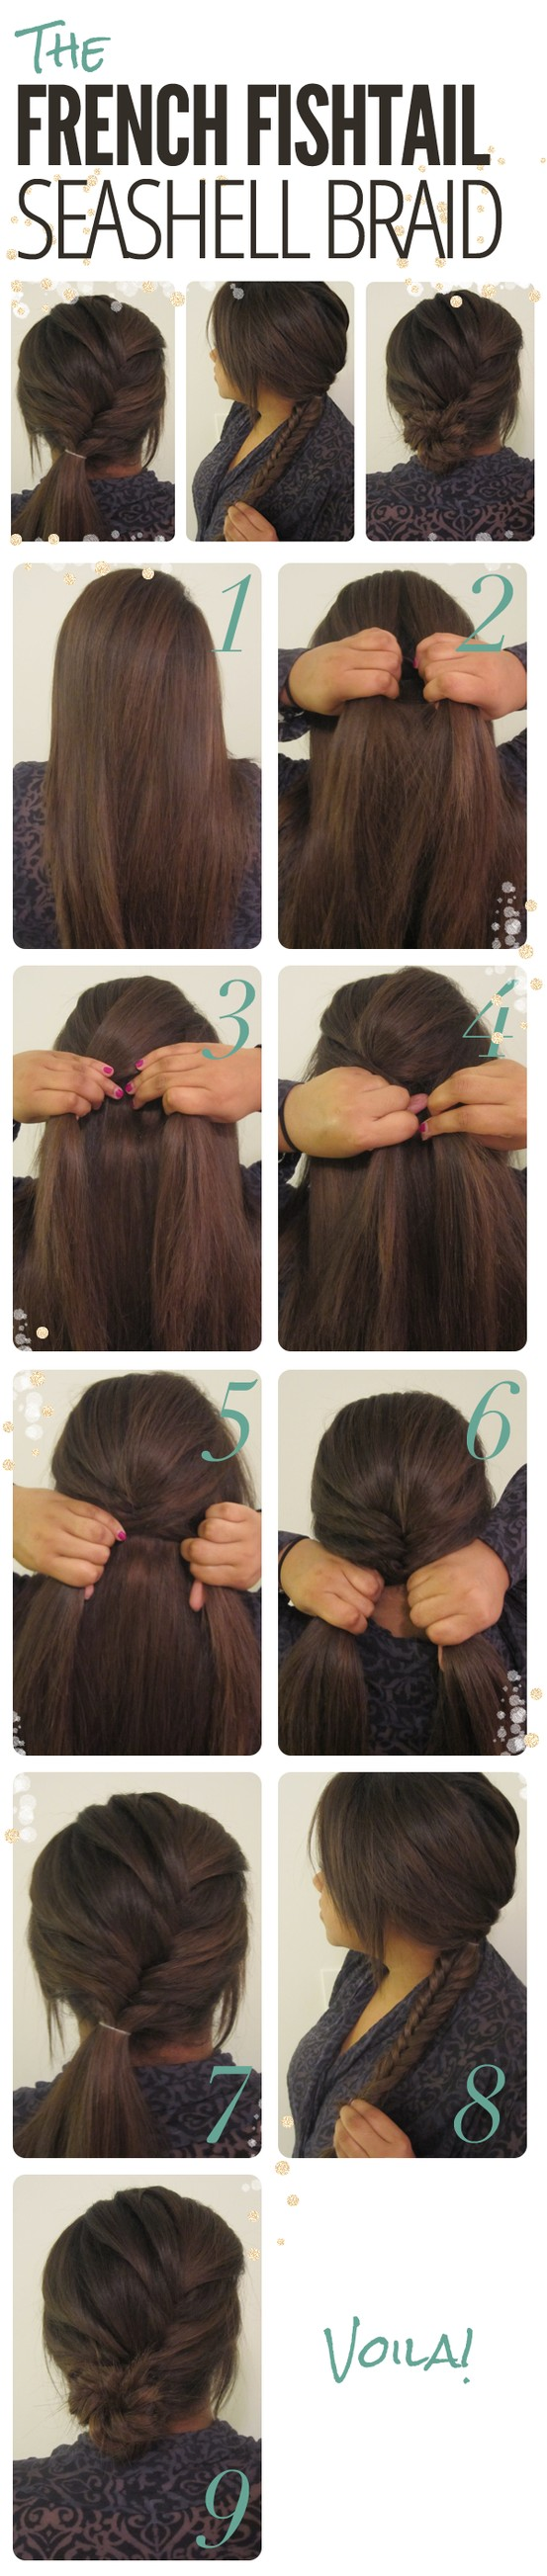 fishbone braid instructions - photo #21